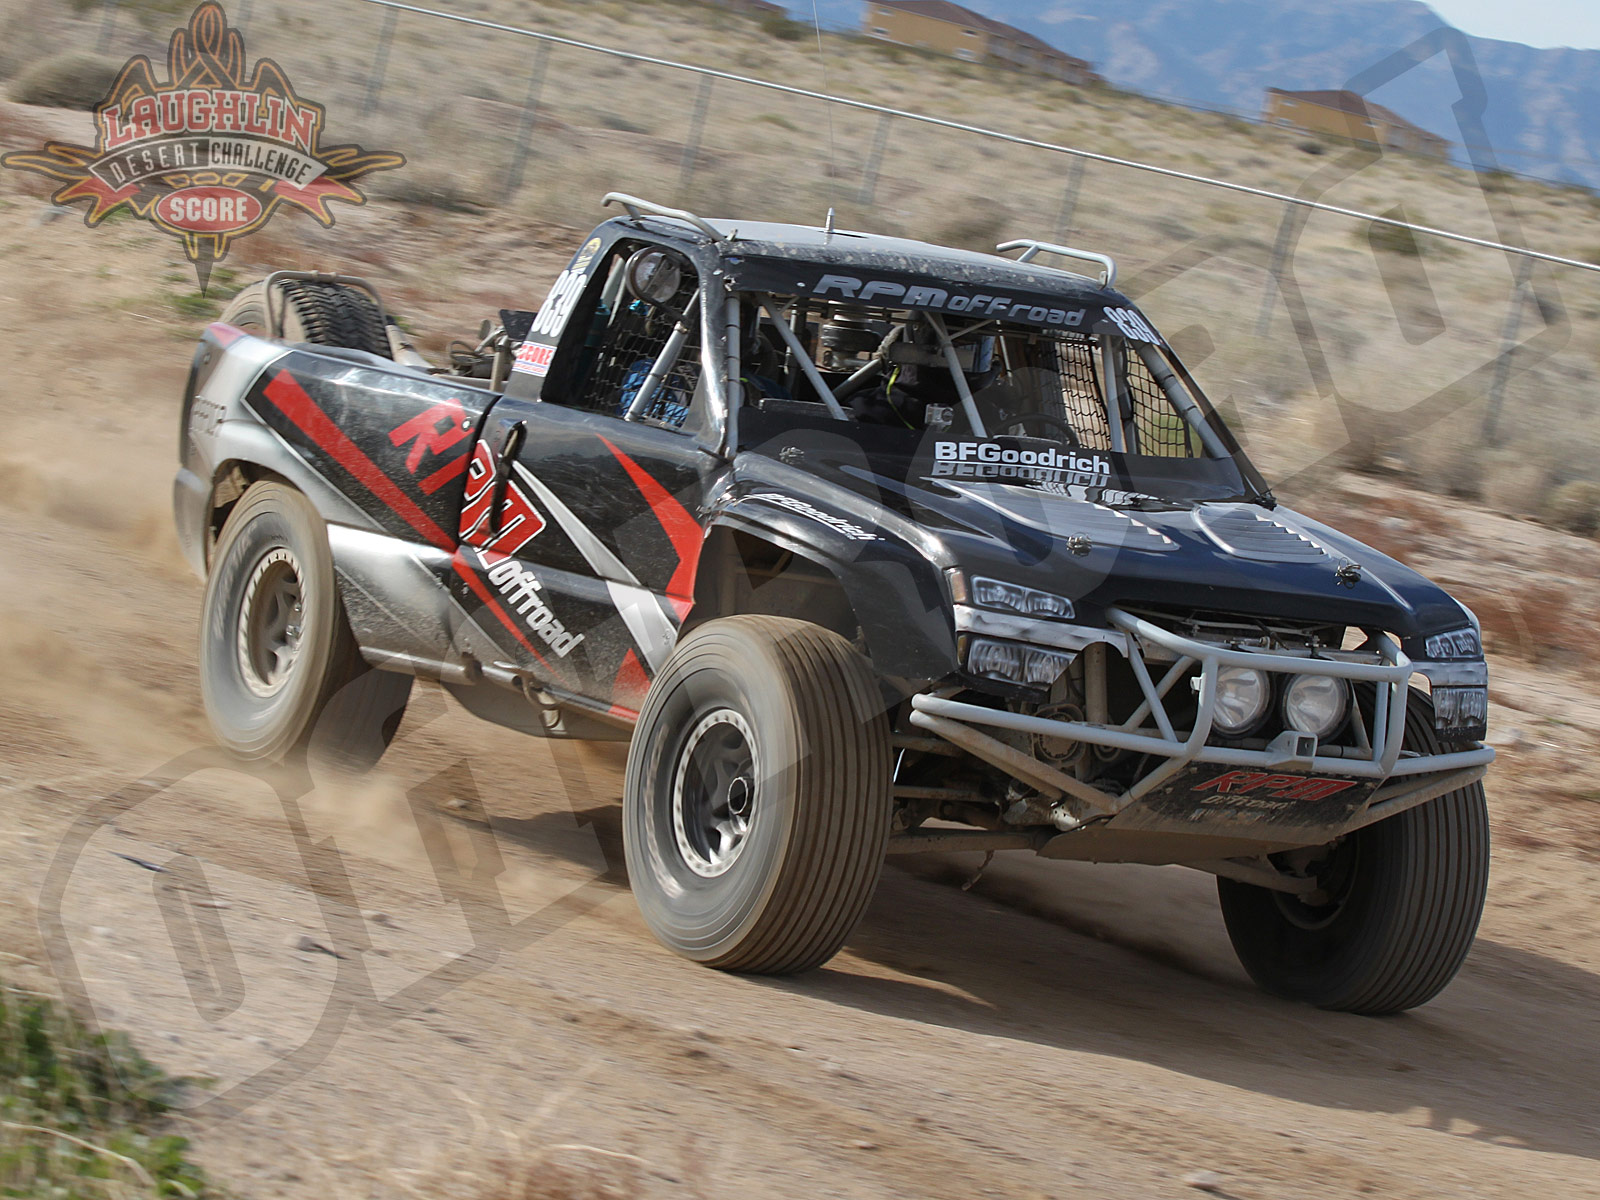 012011or 6593+2011 score laughlin desert challenge+truck classes